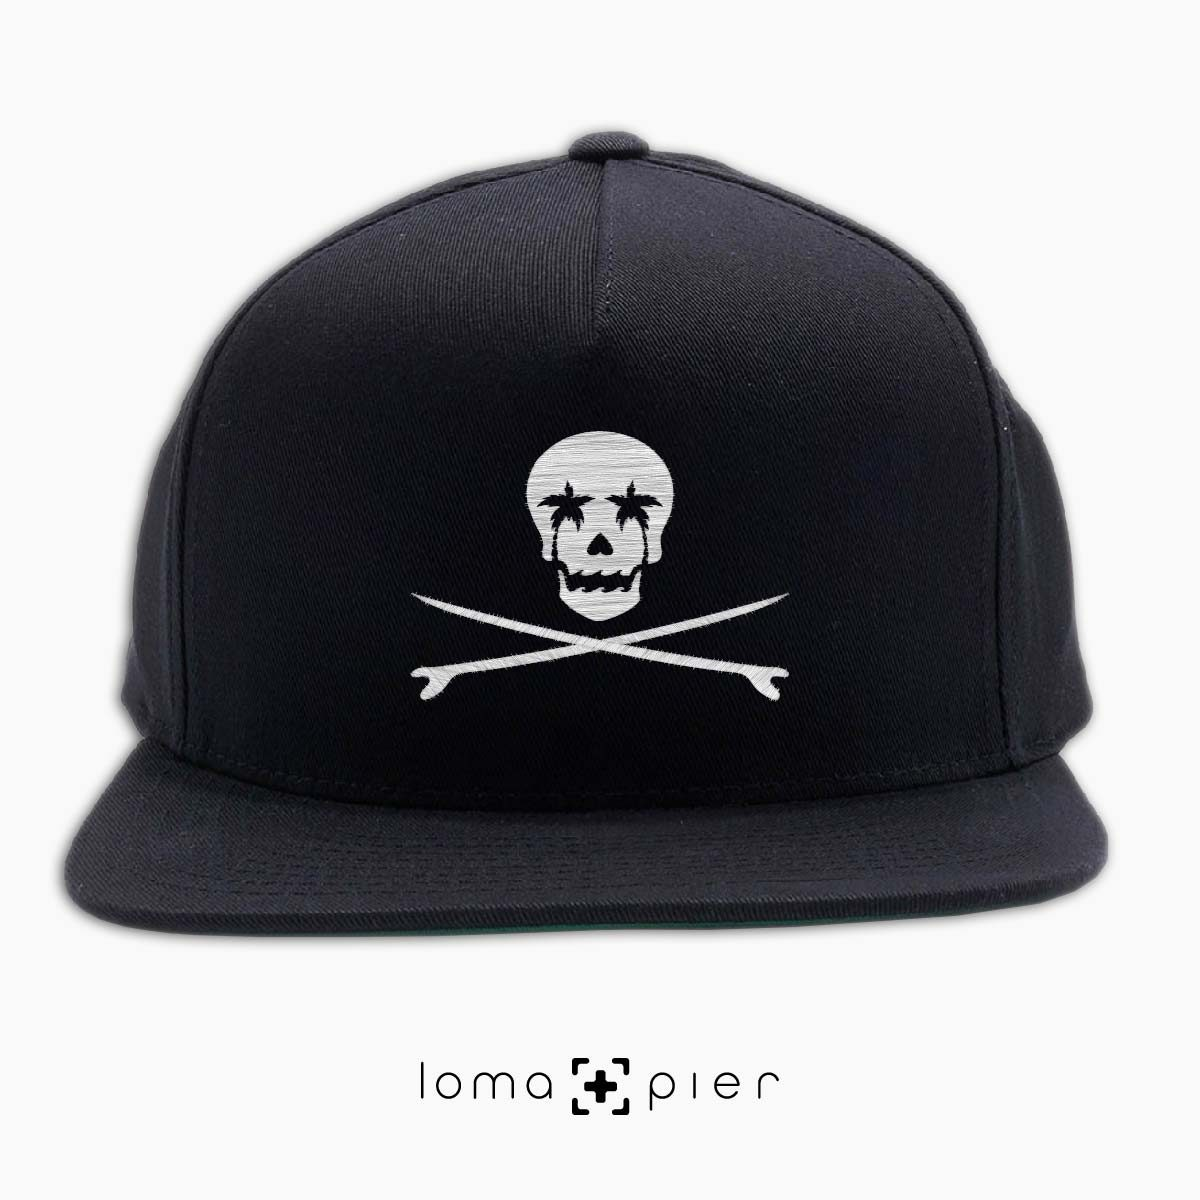 SKULL SURFBOARDS redondo beach snapback hat in black by loma+pier hat store